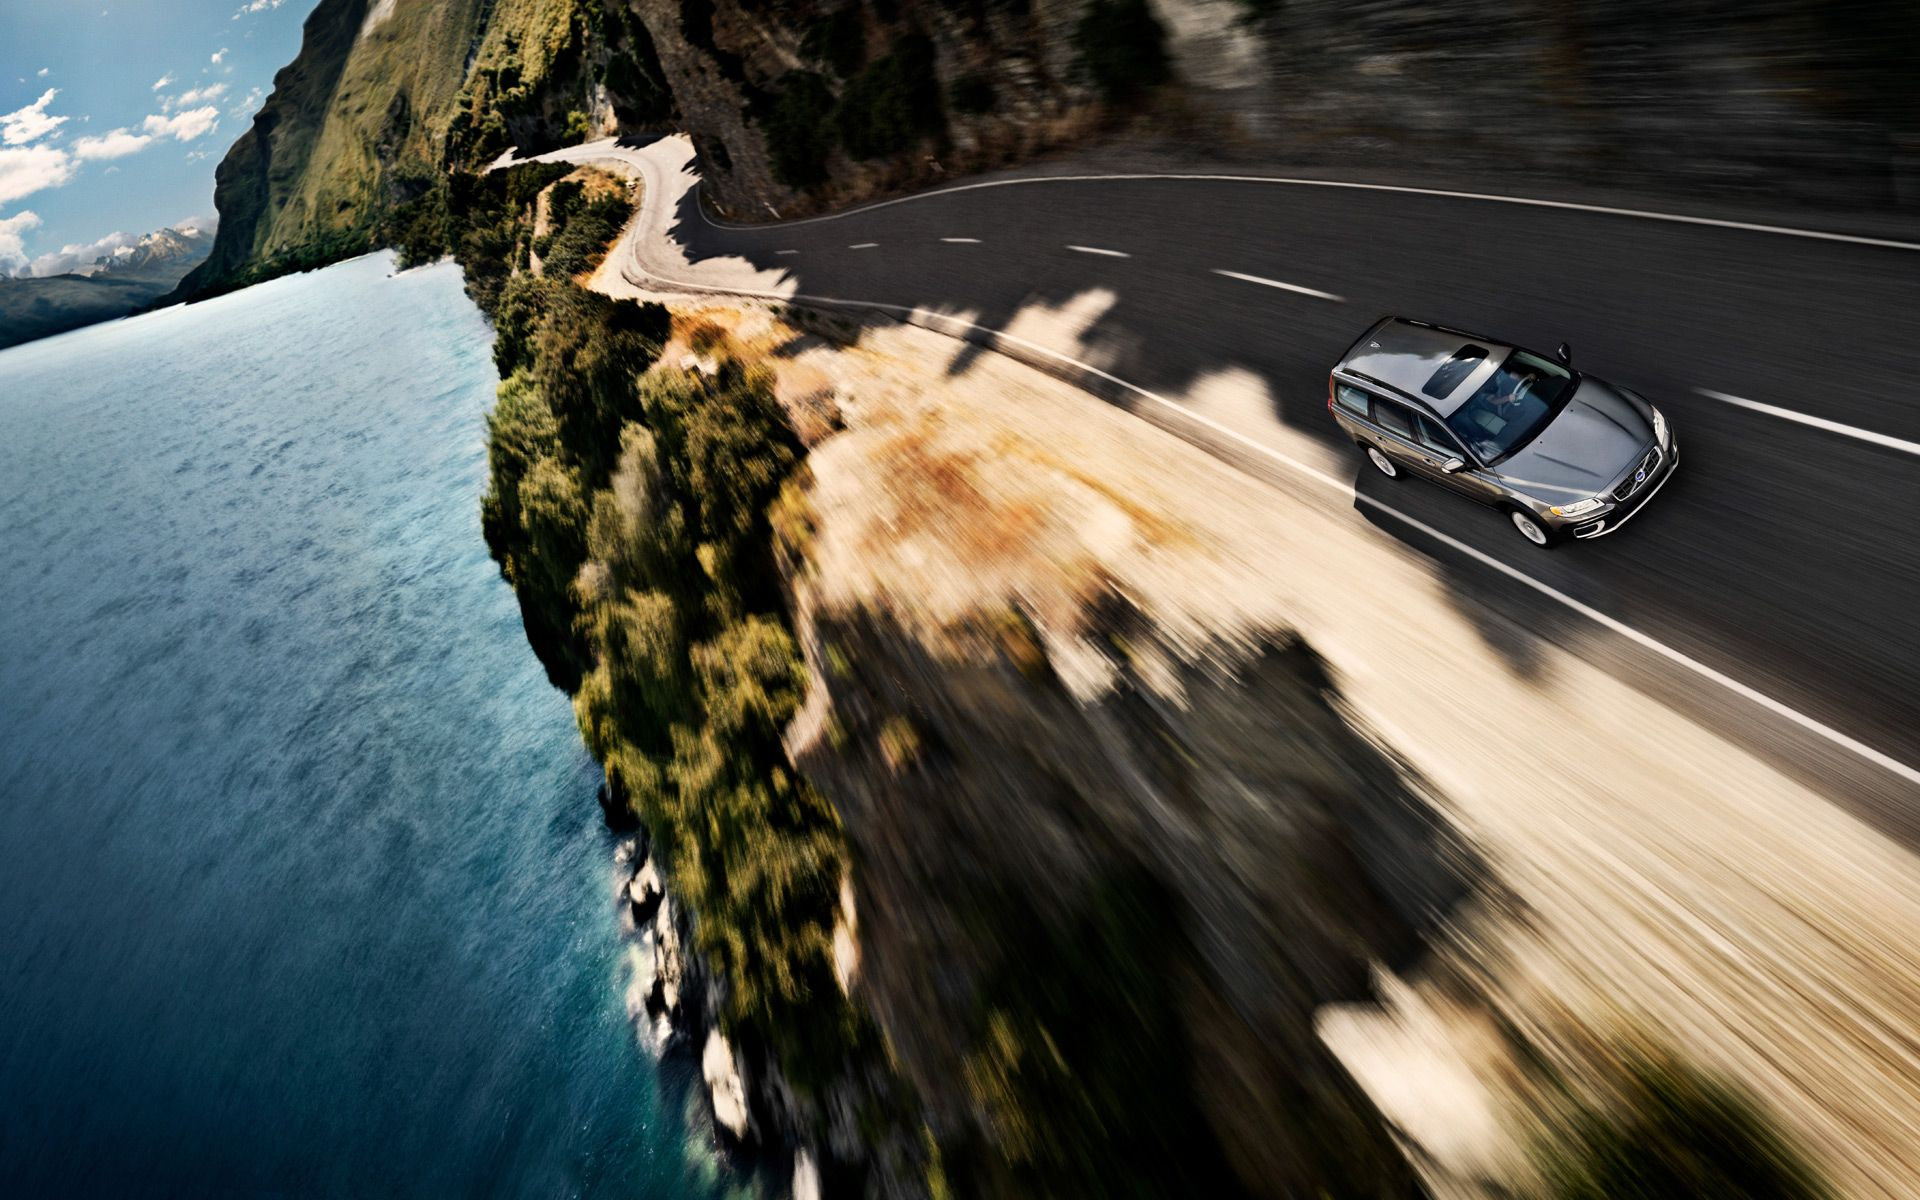 Why not take a long drive in the Volvo XC70